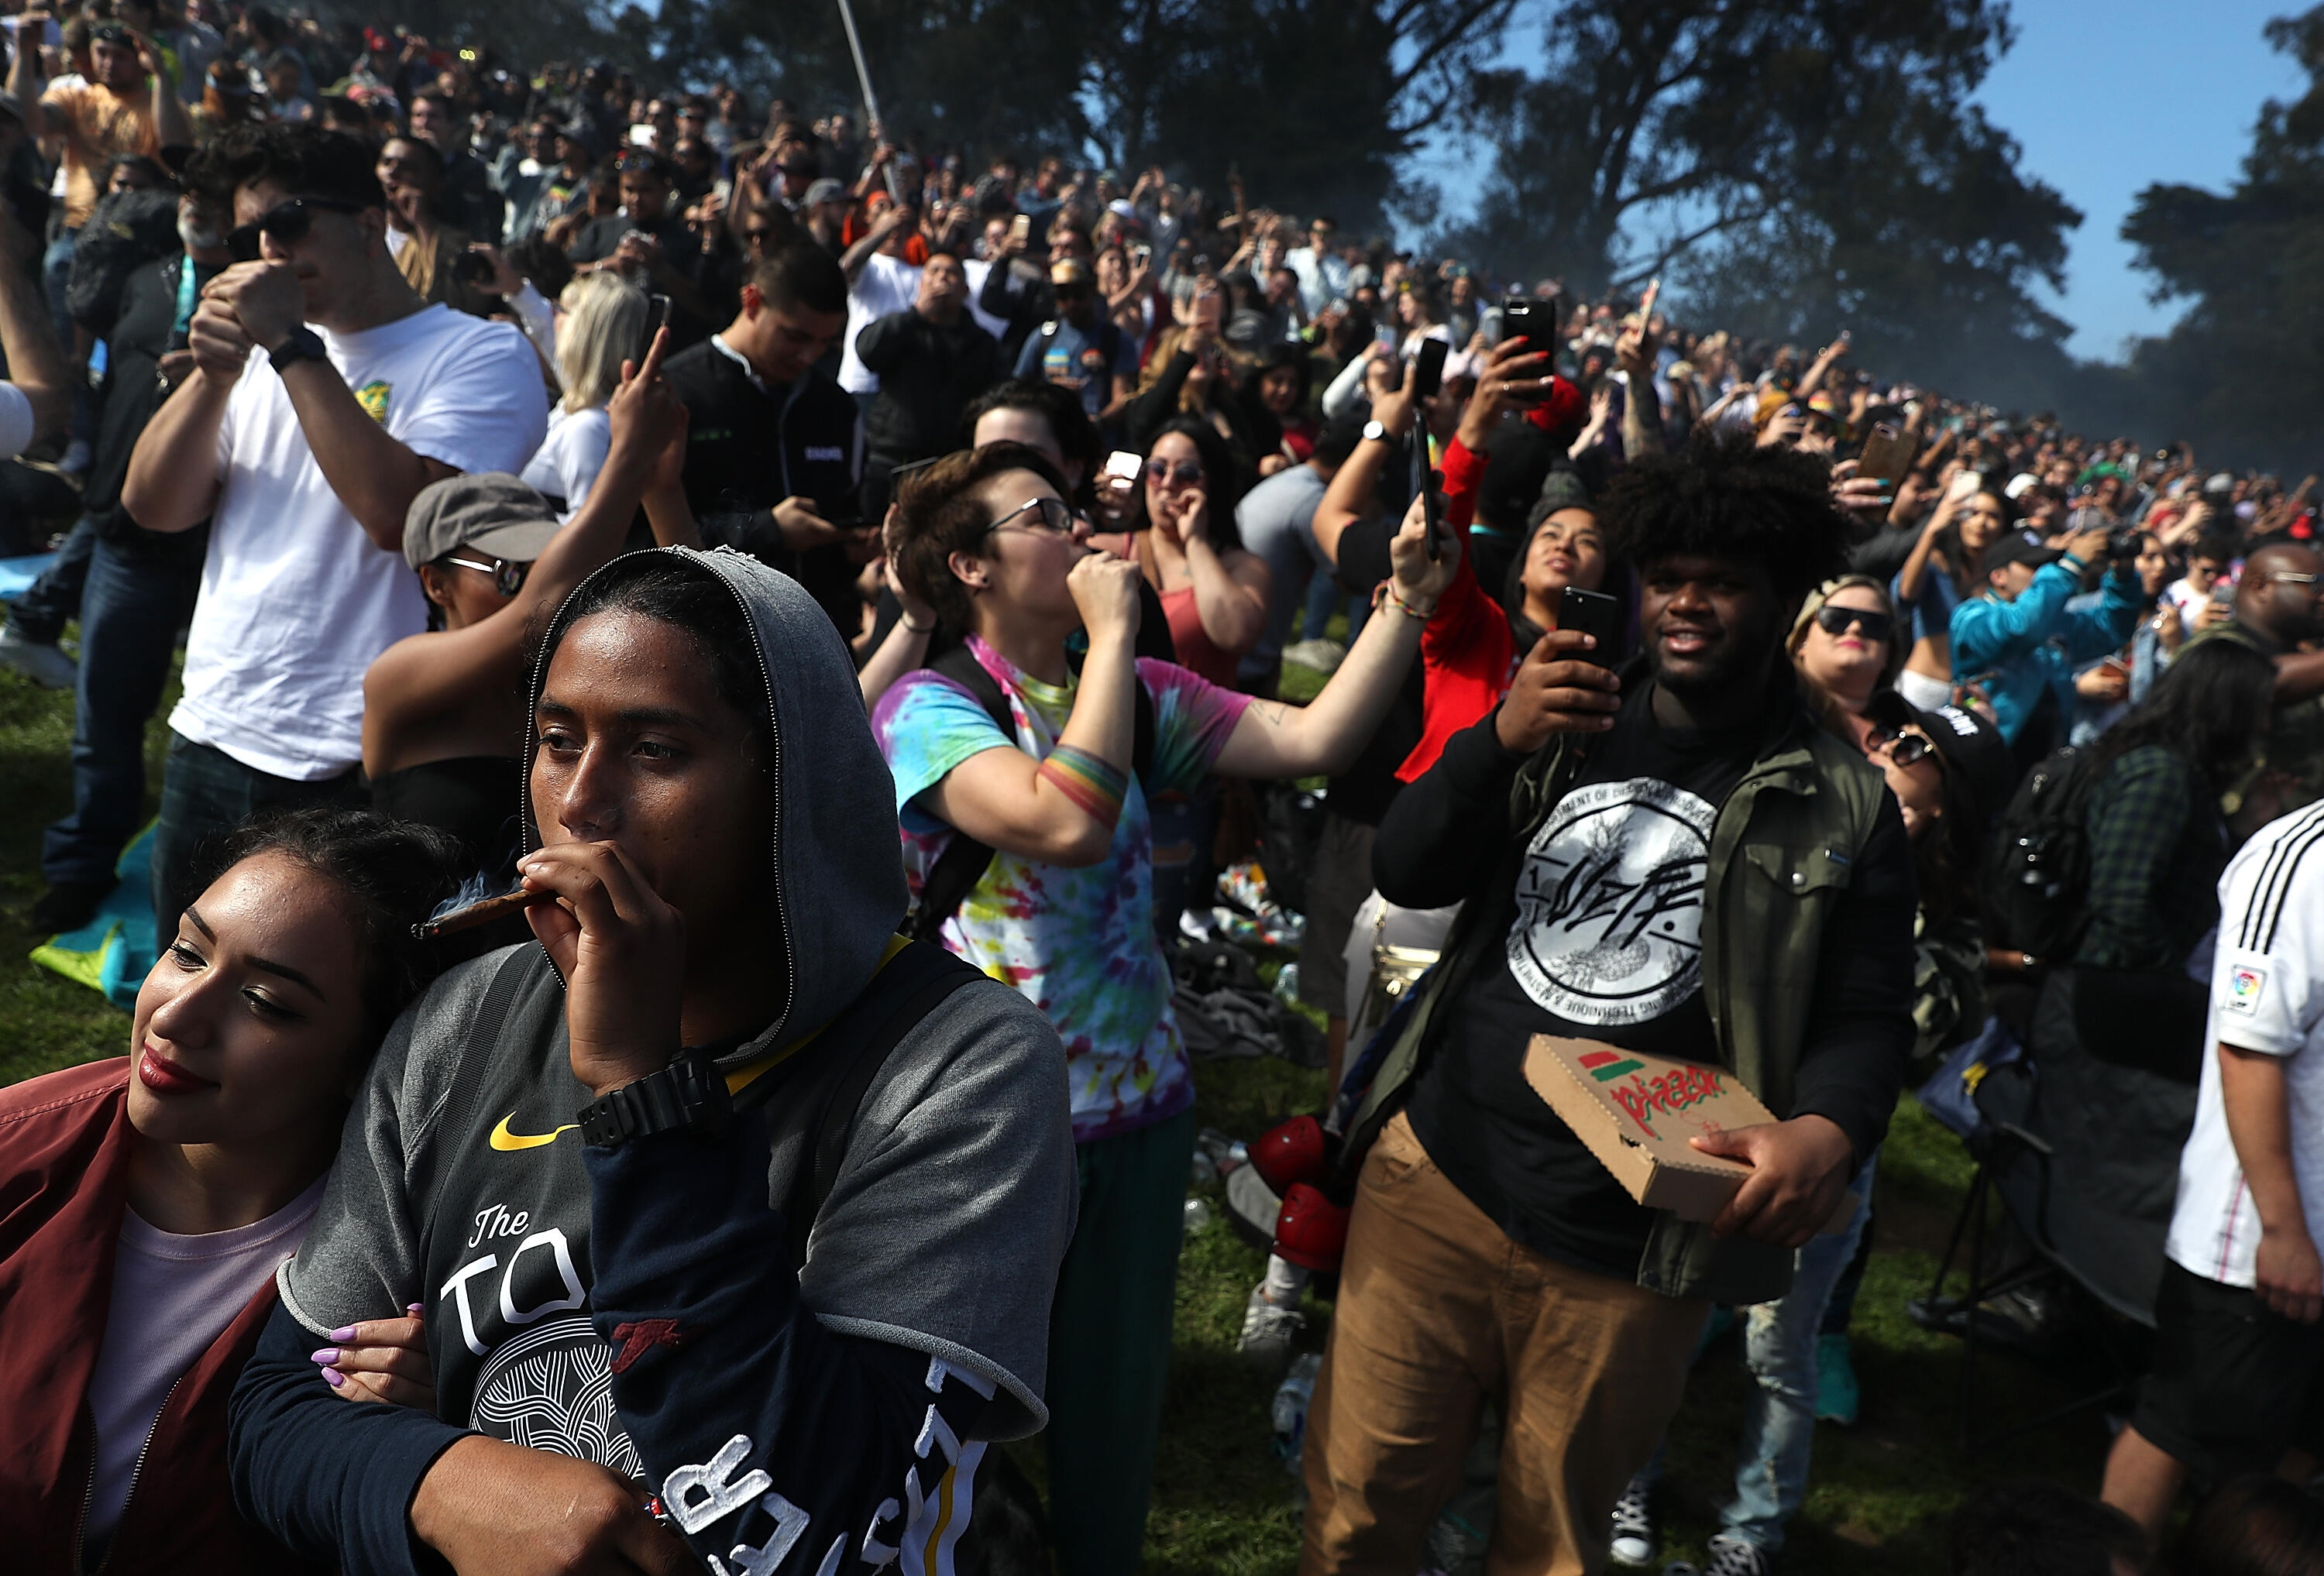 Ready To Party In SF For 420? Here's The Info